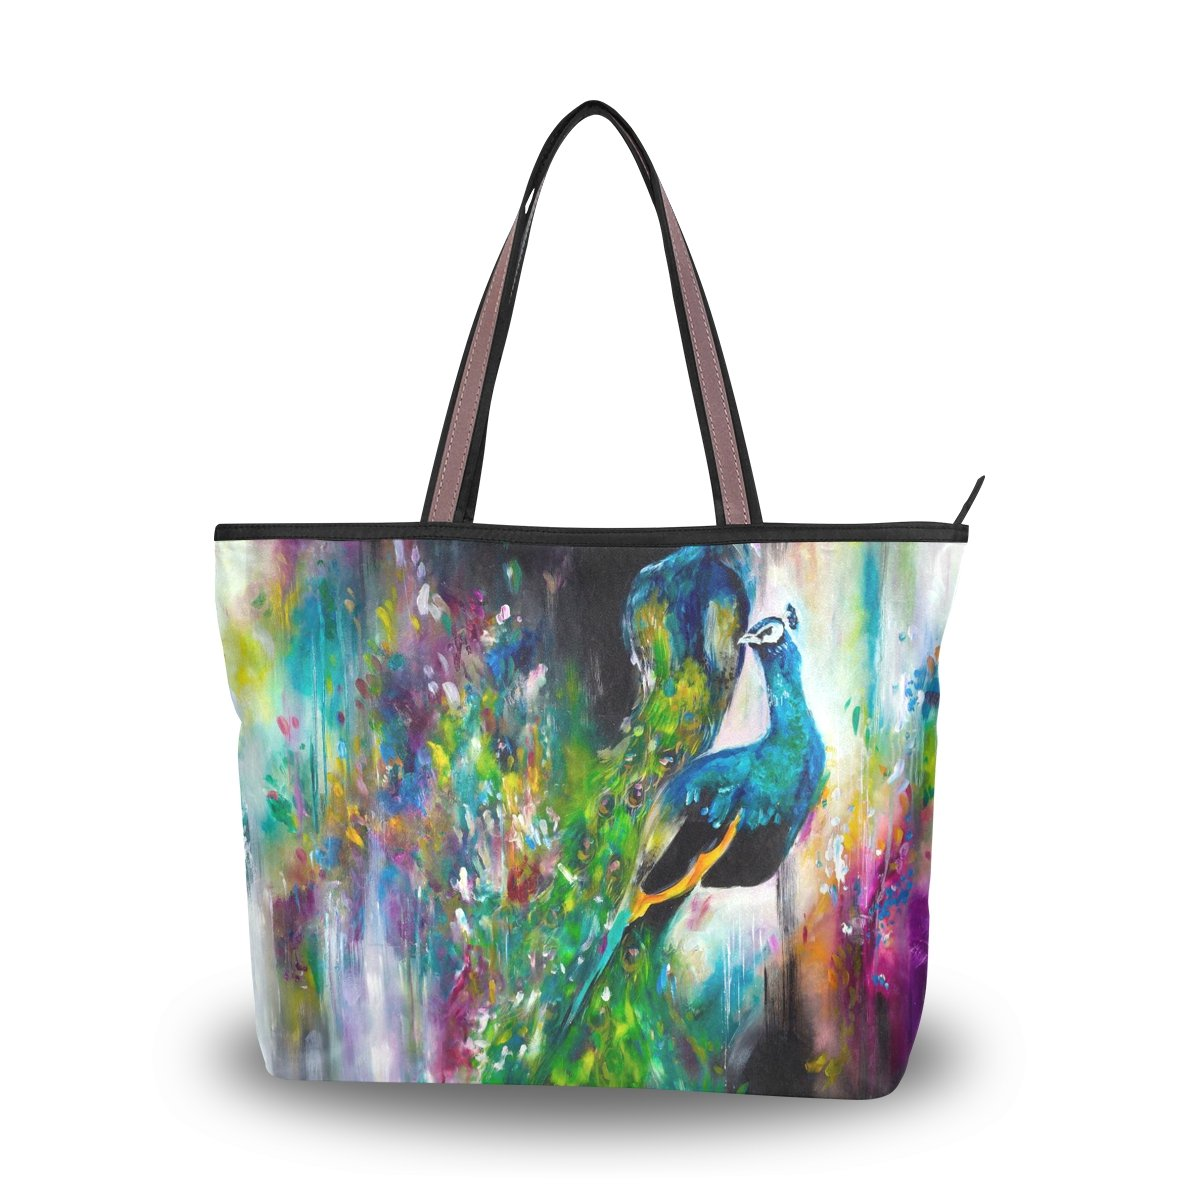 Women Large Tote Top Handle Shoulder Bags Peacock Feather Ladies Handbag L by JSTEL (Image #6)